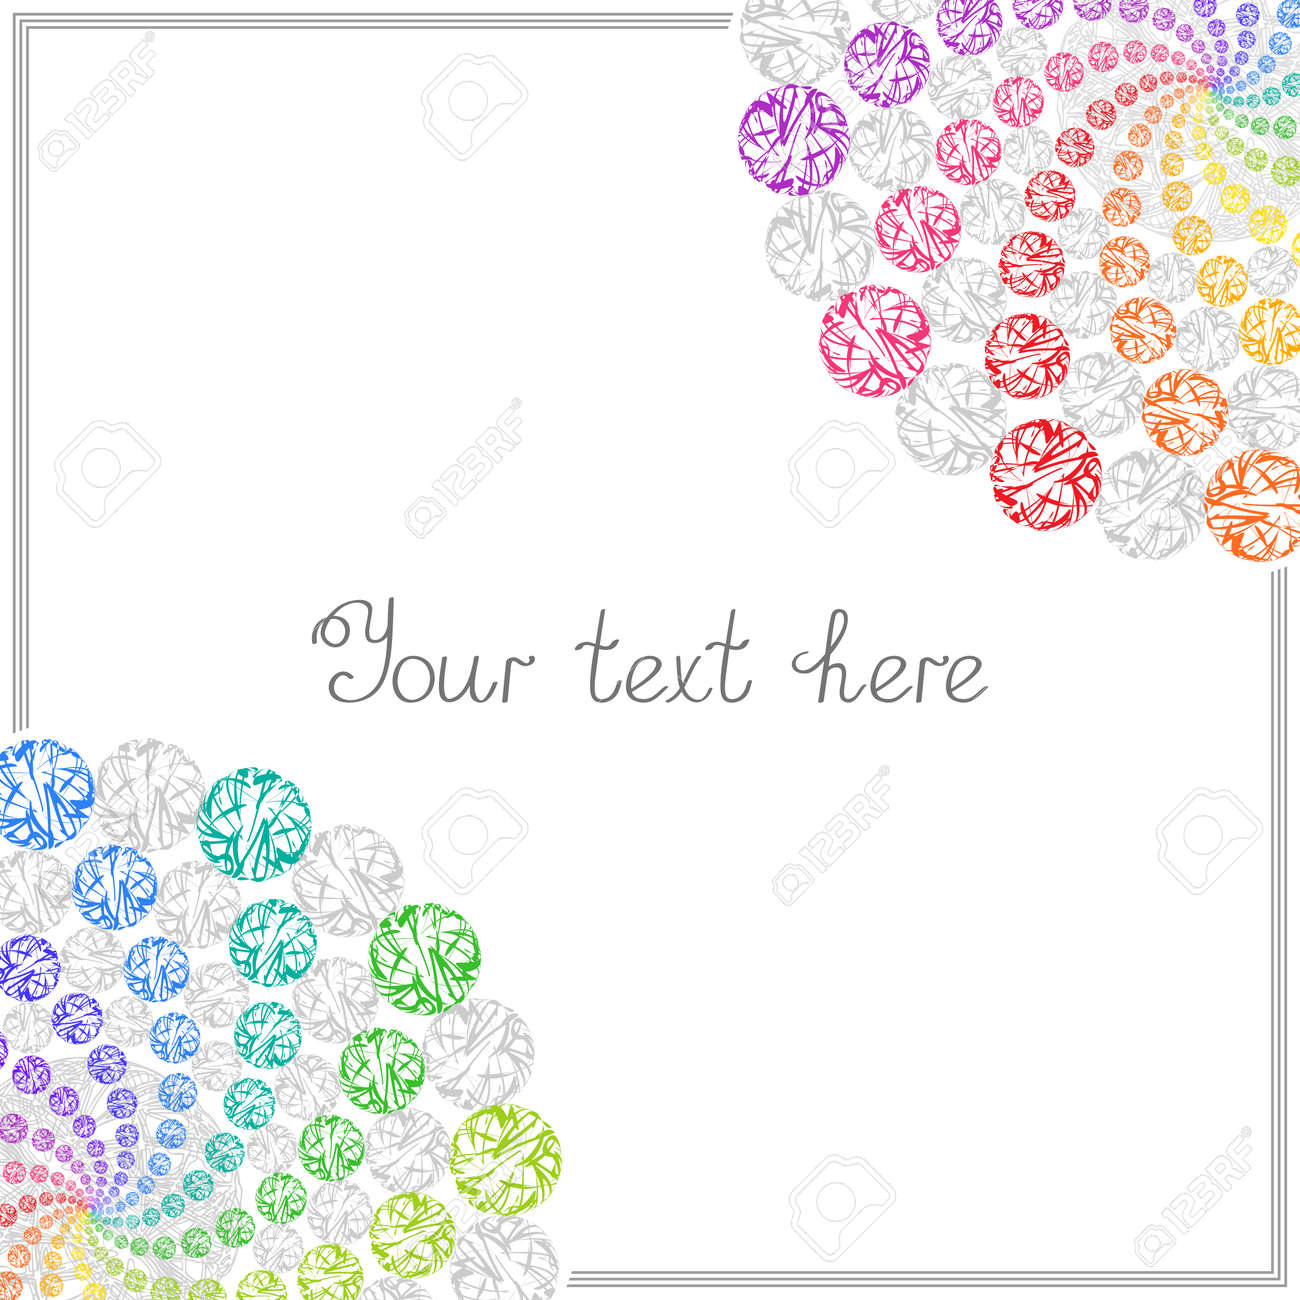 Colorful Templates For Text, Placard, Cover. Abstract Frame With ...